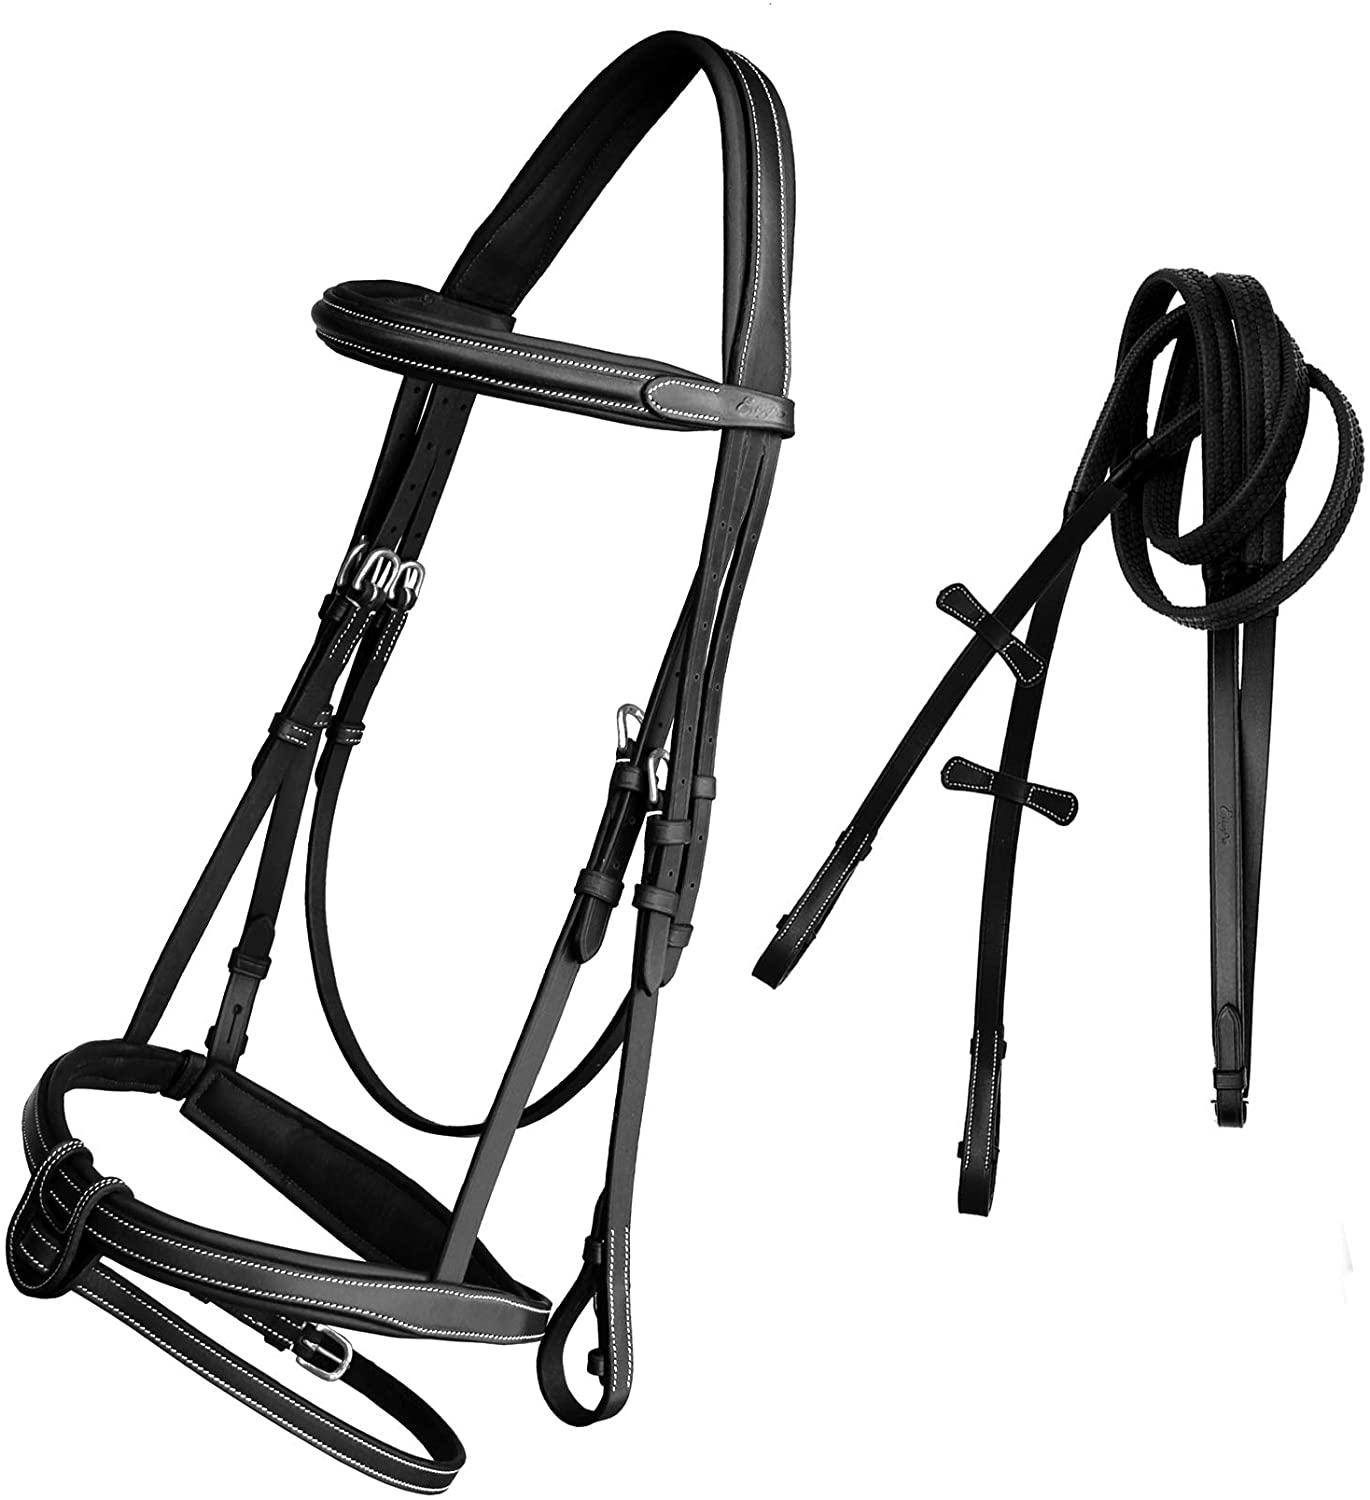 ExionPro Comfort Soft Lined Mono Crown Snaffle Bridle with U Shape Detachable Flash Snaffle Horse English Bridle & Rubber Reins. | English Horse Tack | English Bridles for Horses - Bridle and Reins